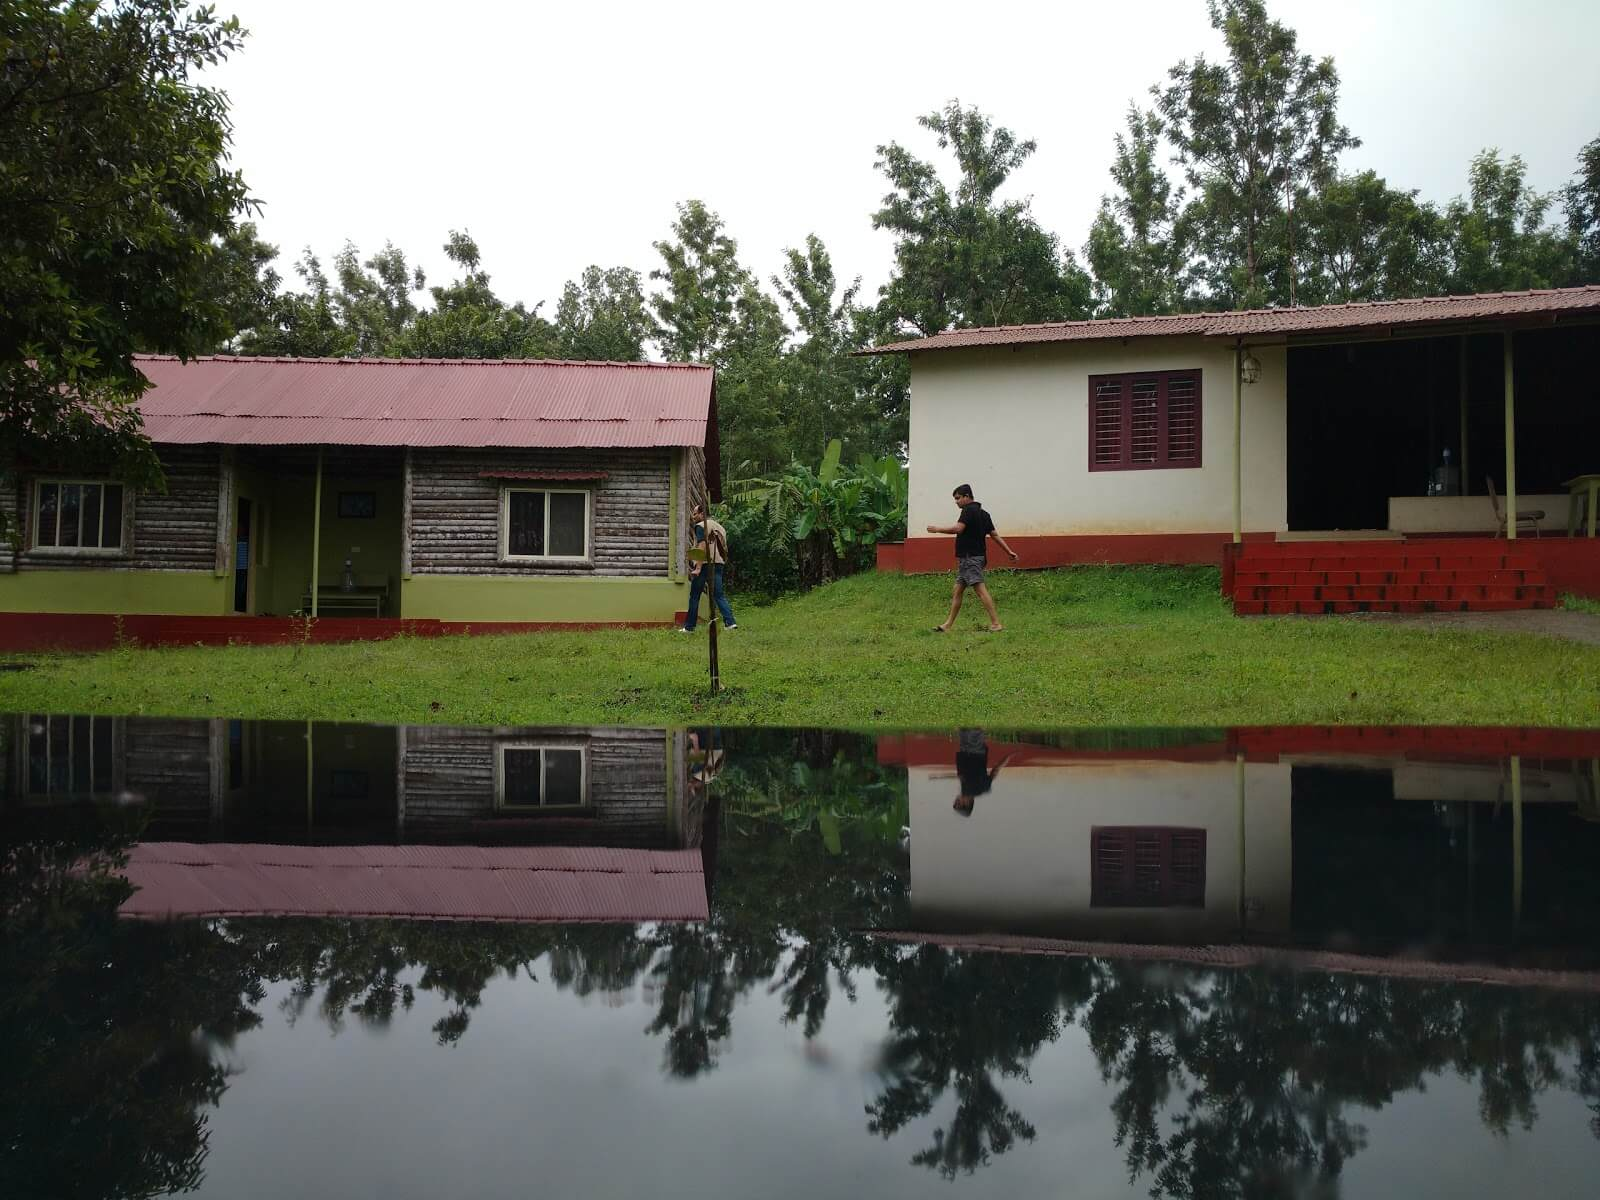 Prakruth Homestay situated near a lake